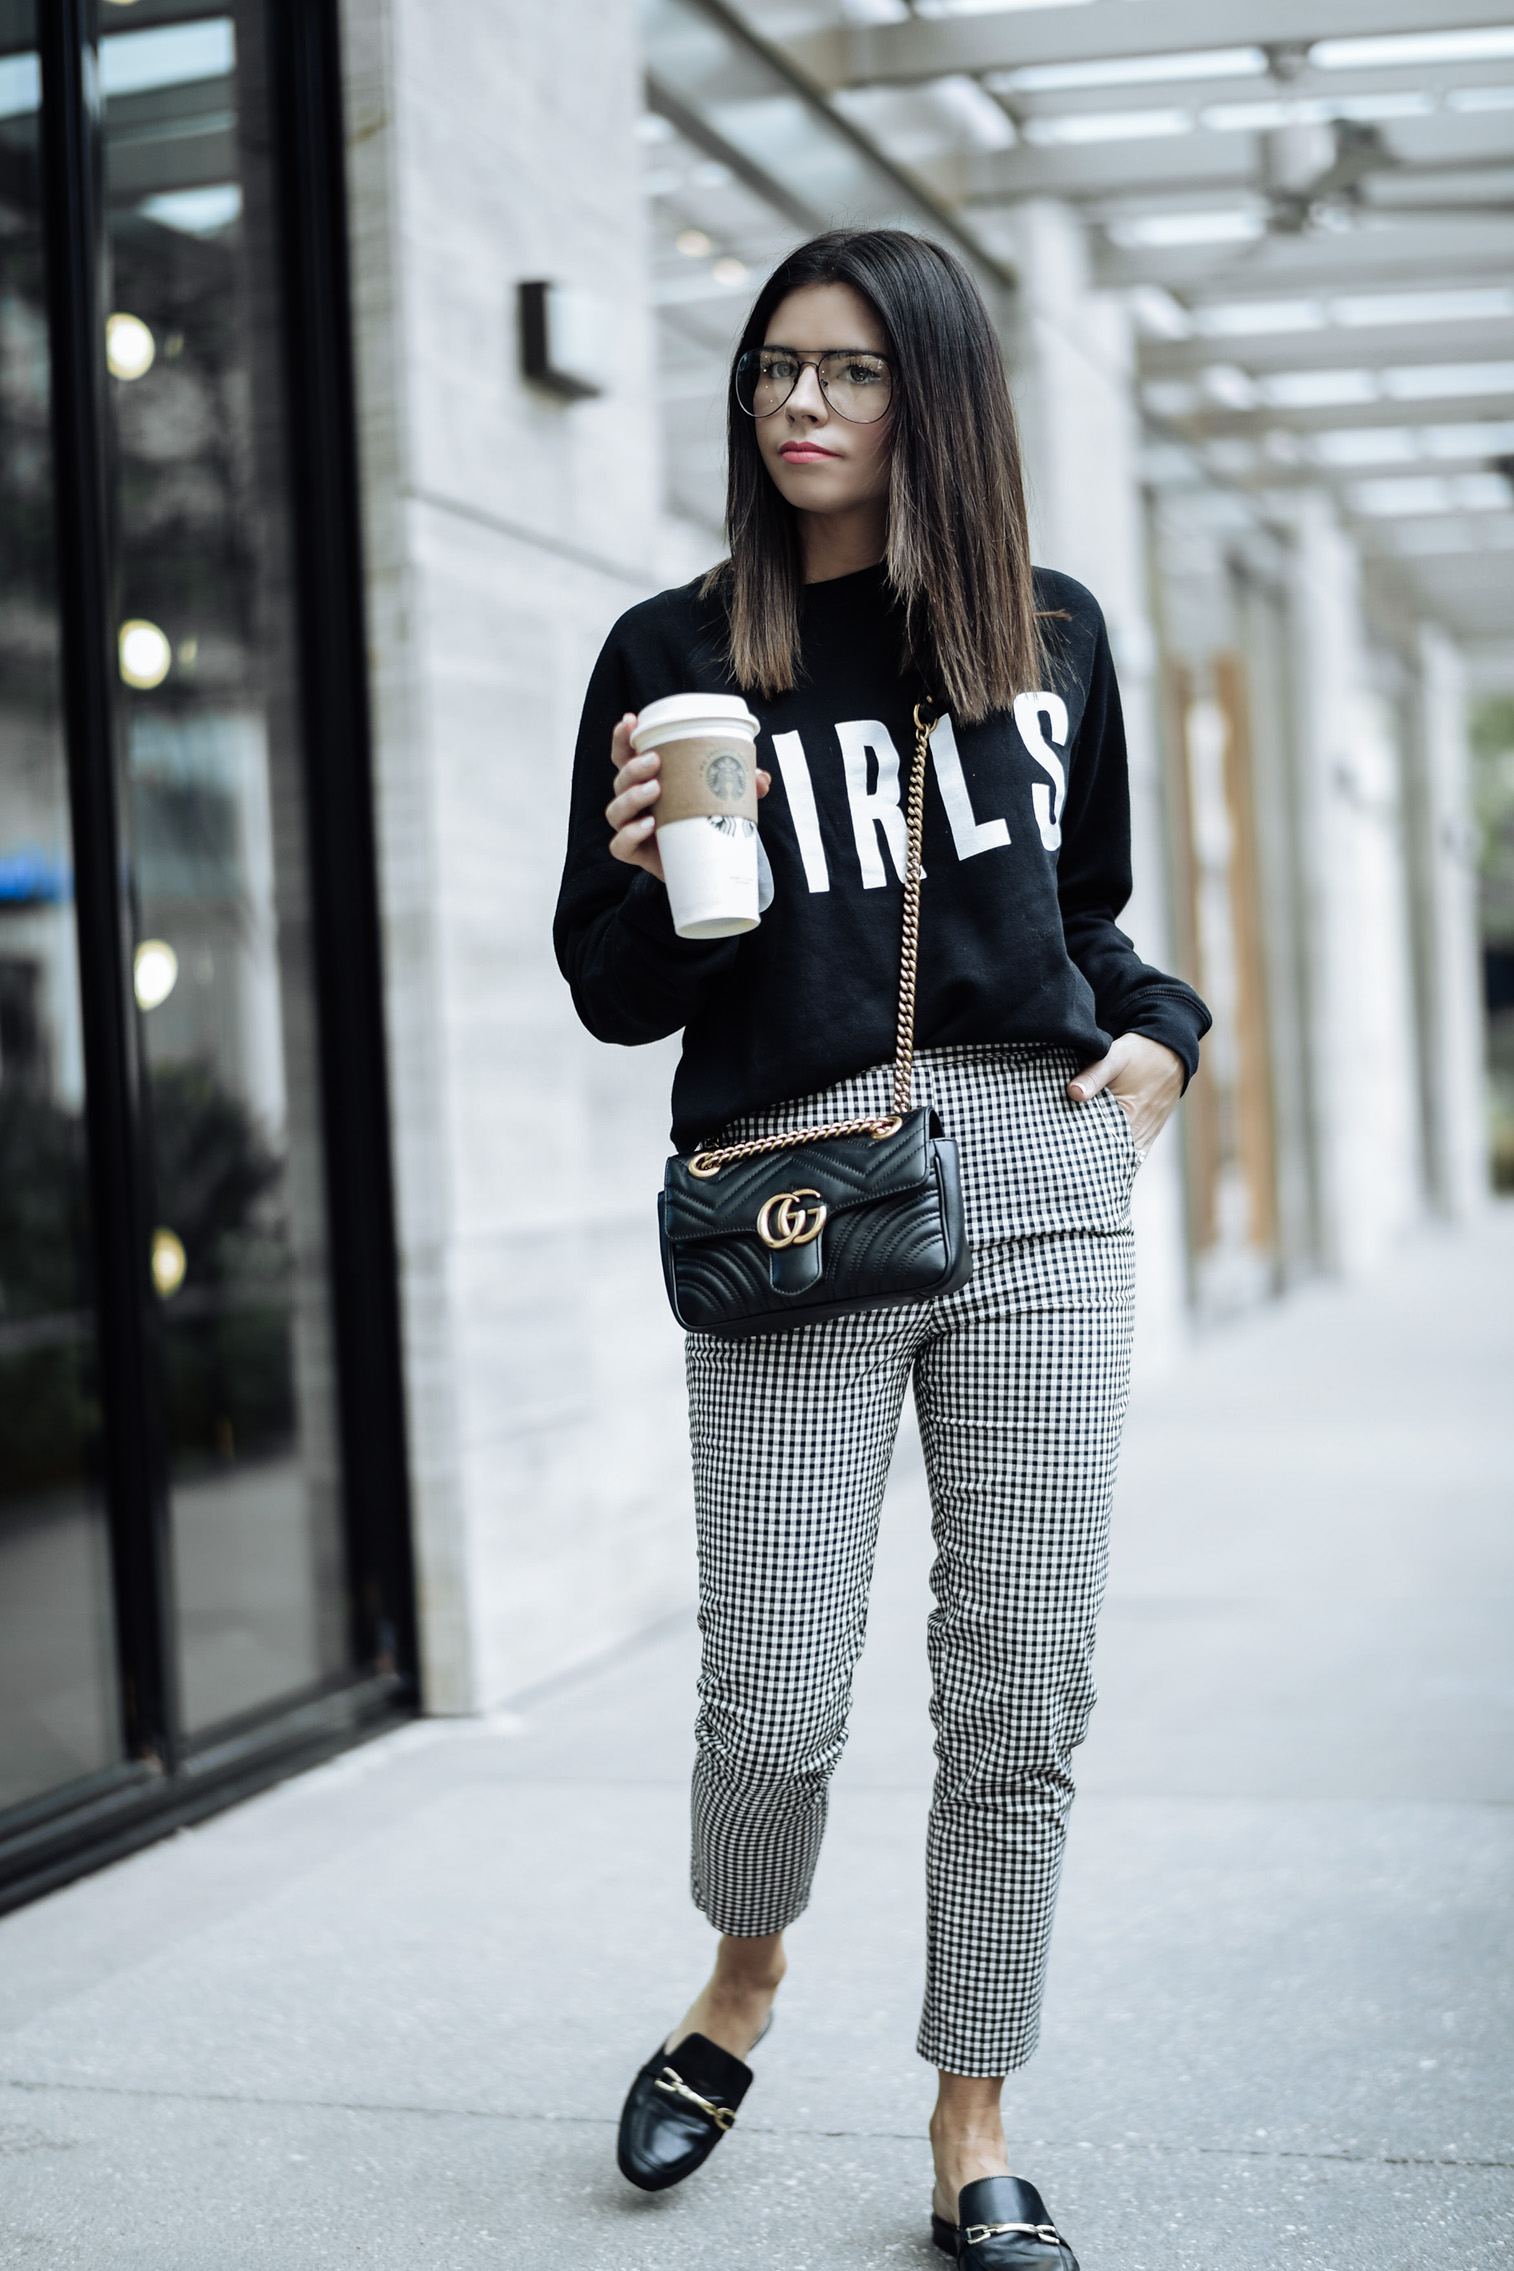 Gingham pants | Tiffany Jais fashion and lifestyle blogger of Flaunt and Center | Houston fashion blogger | Streetstyle blog | Brunette The Label Girls sweatshirt {C/O For bloggers Only} | Gingham pants {Currently 50% off with code get $50} | Black readers | Gucci marmot bag in black |